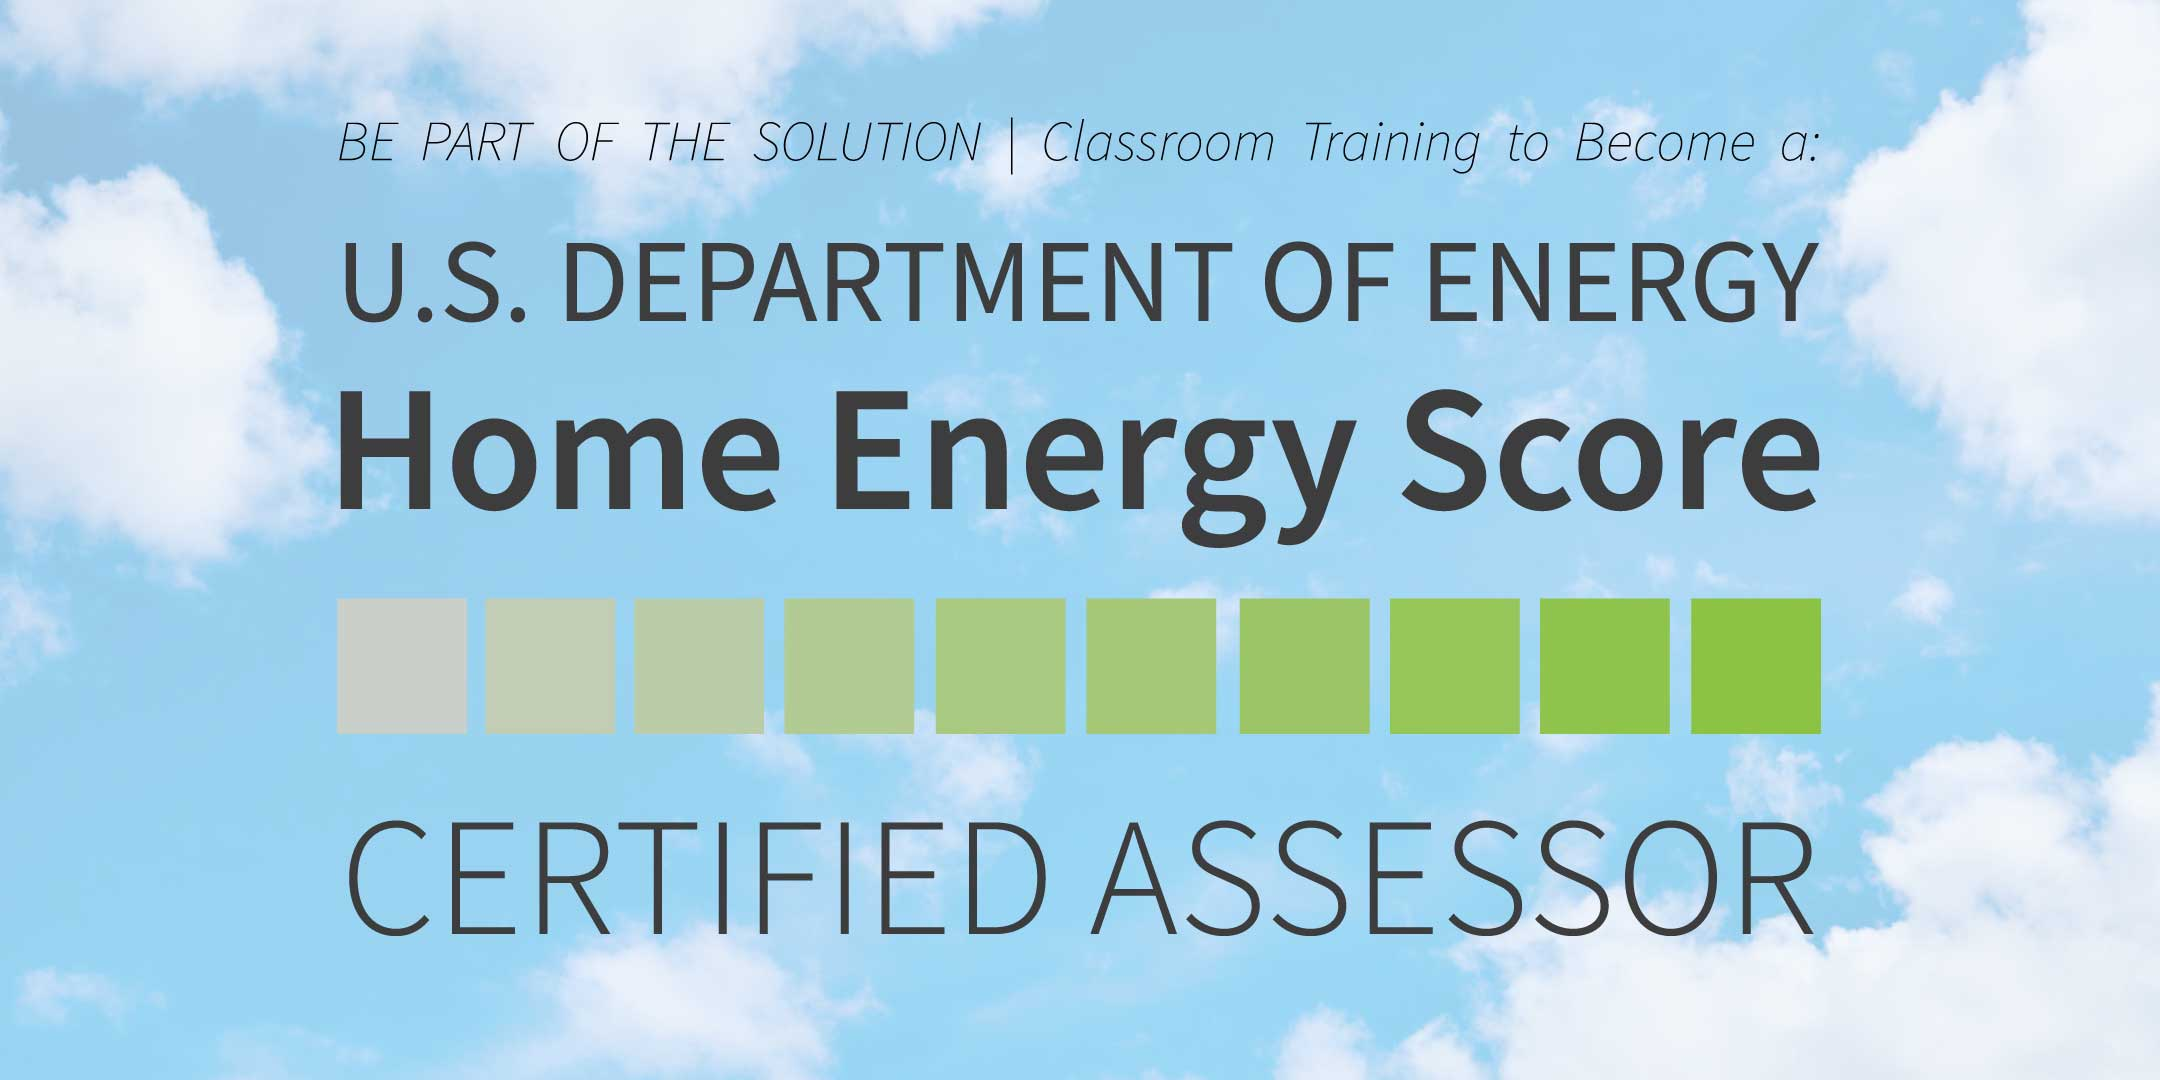 Home Energy Score Certified Assessor Training